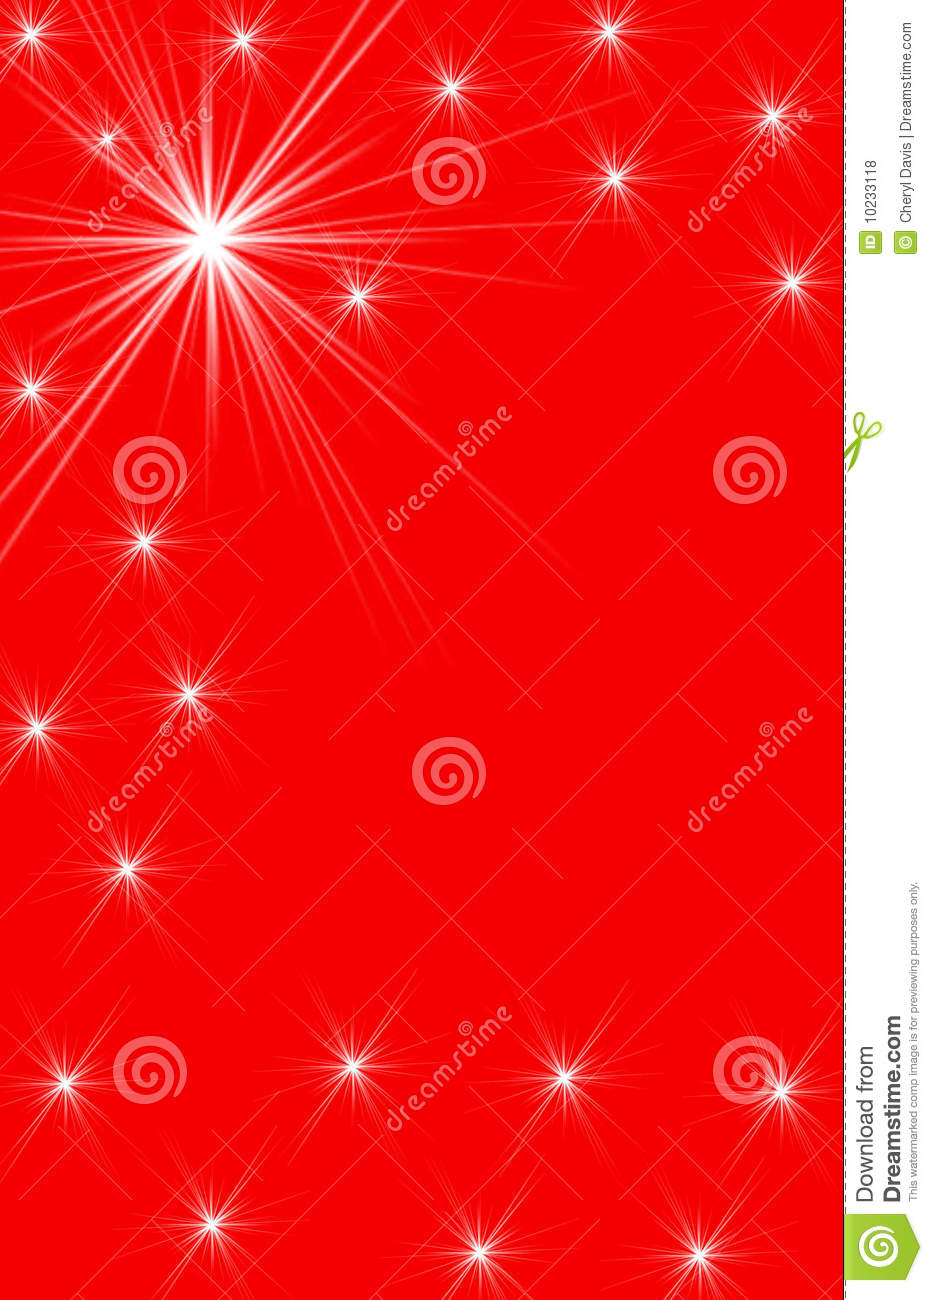 White Star Designs On Red Vertical Background Royalty Free ...